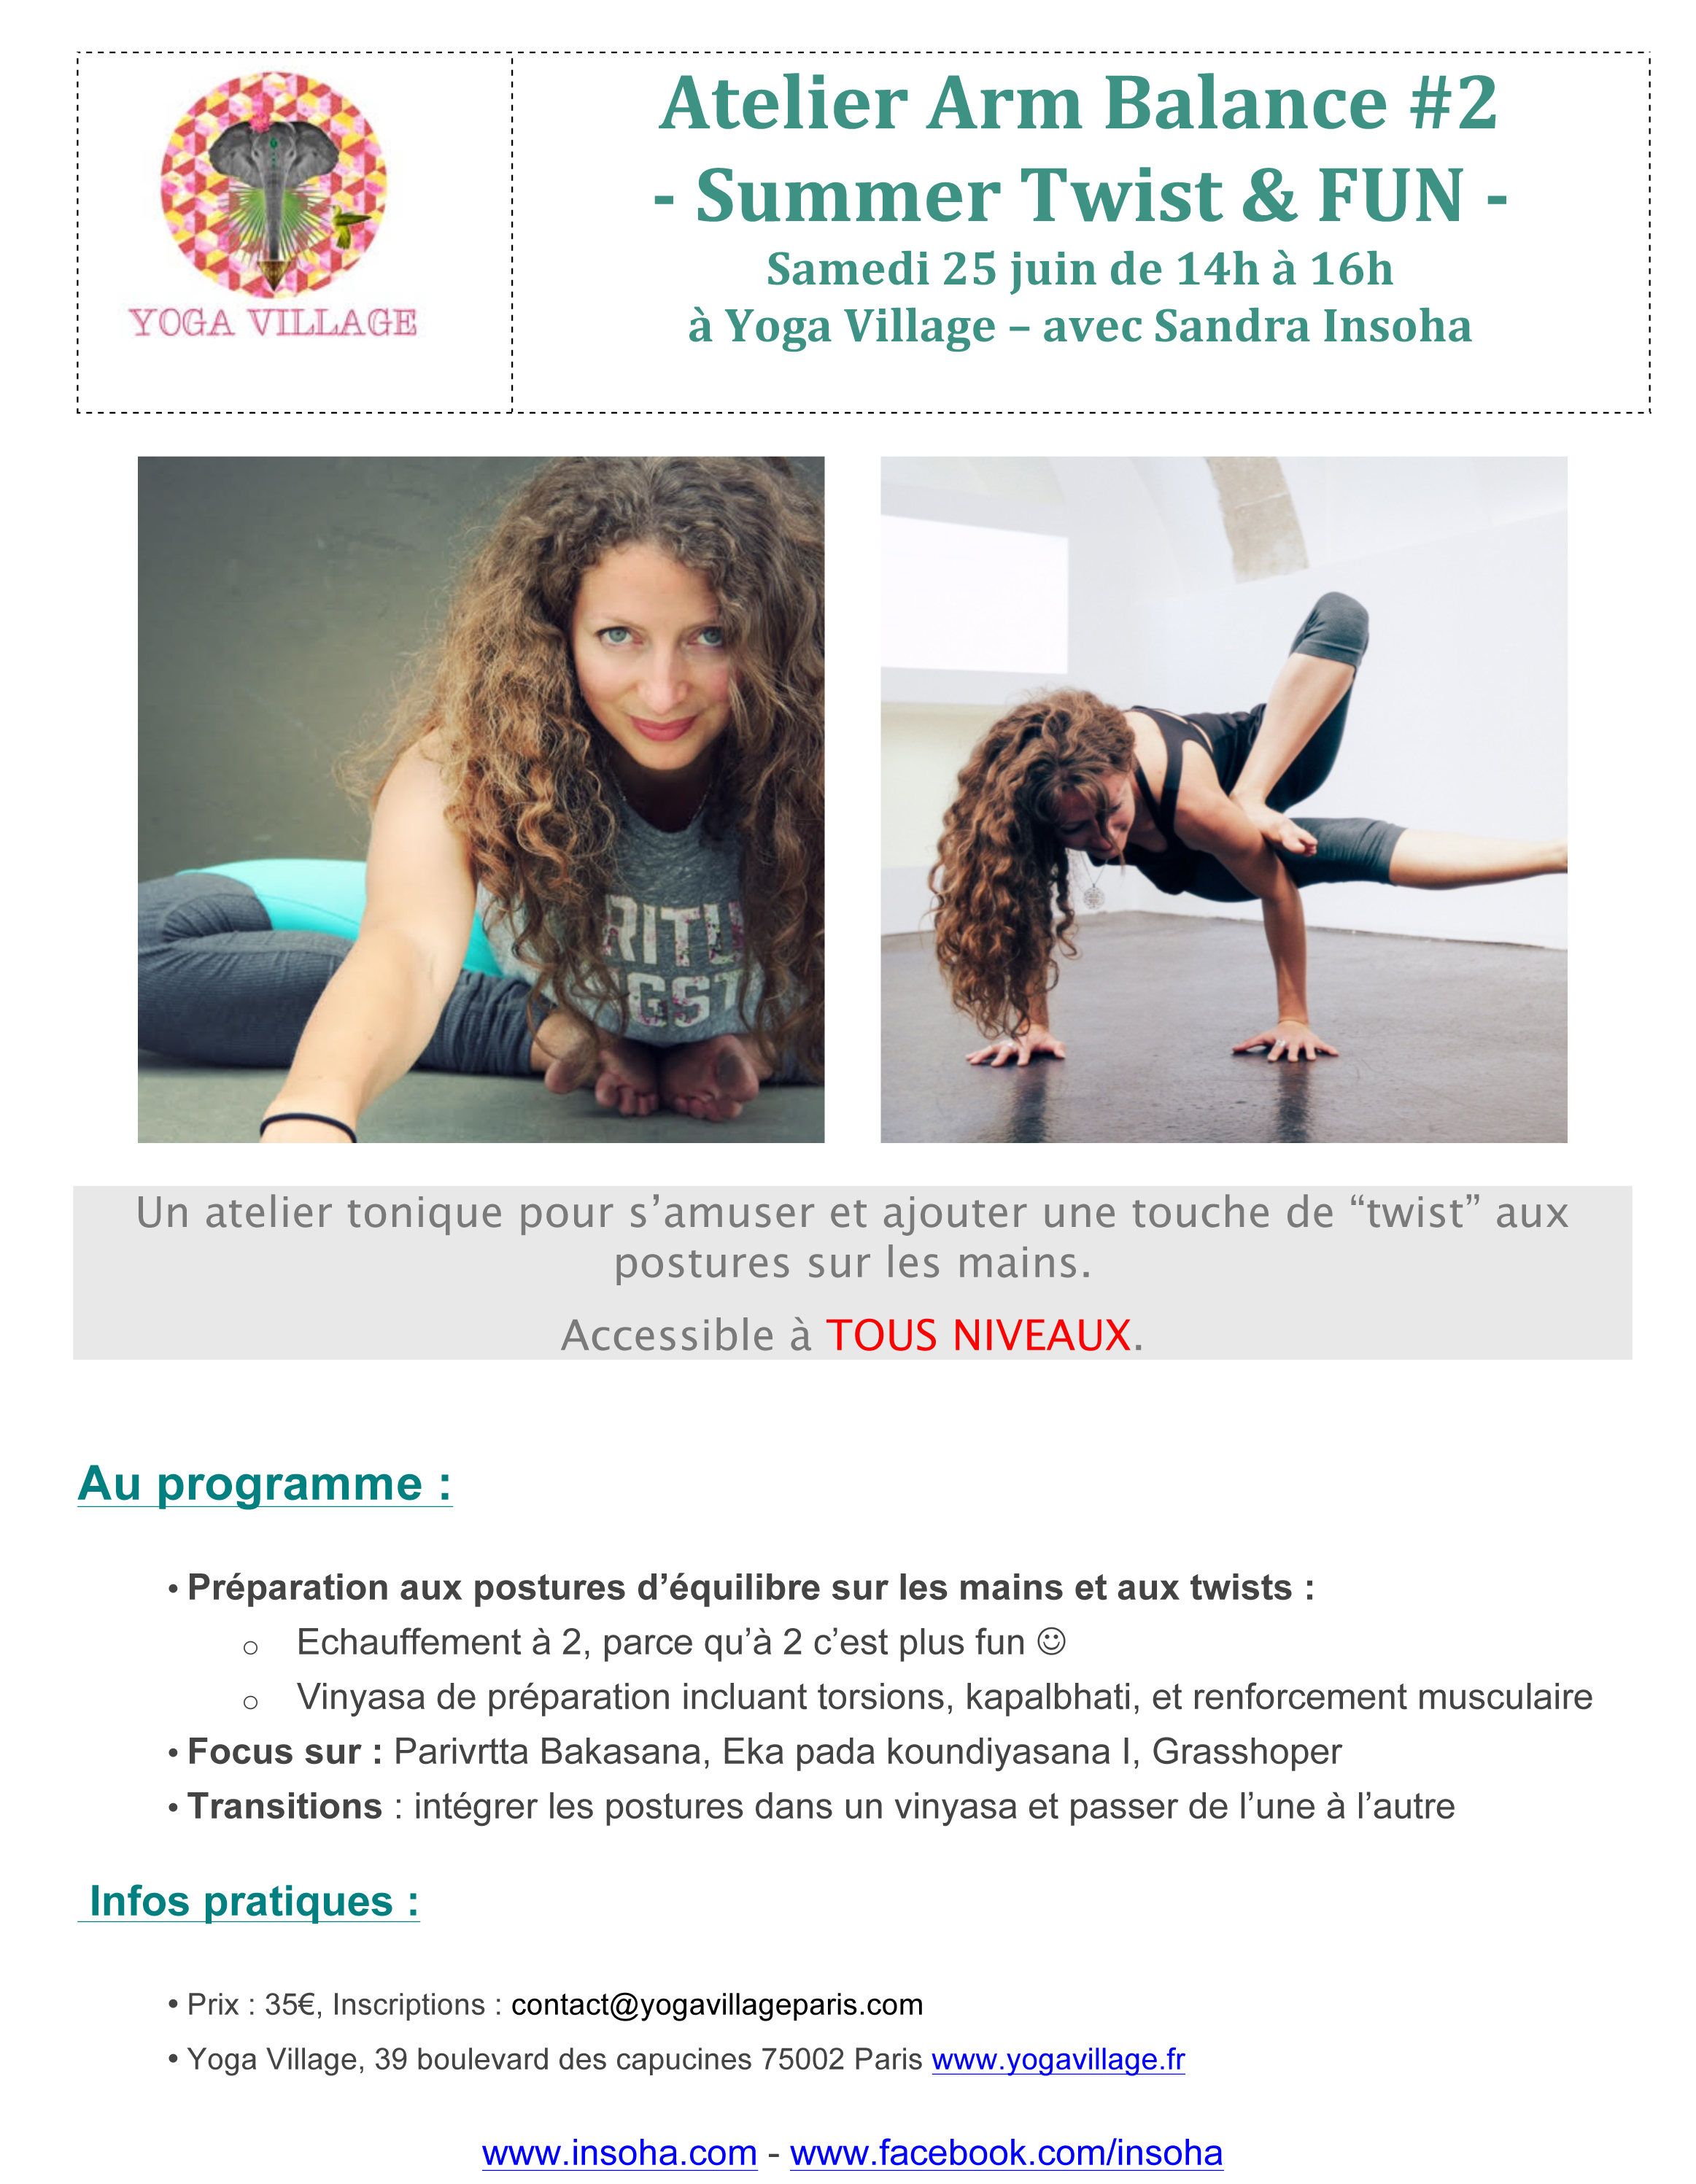 Atelier-Summer-Twist-Sandra-Insoha-Yoga-Village-paris